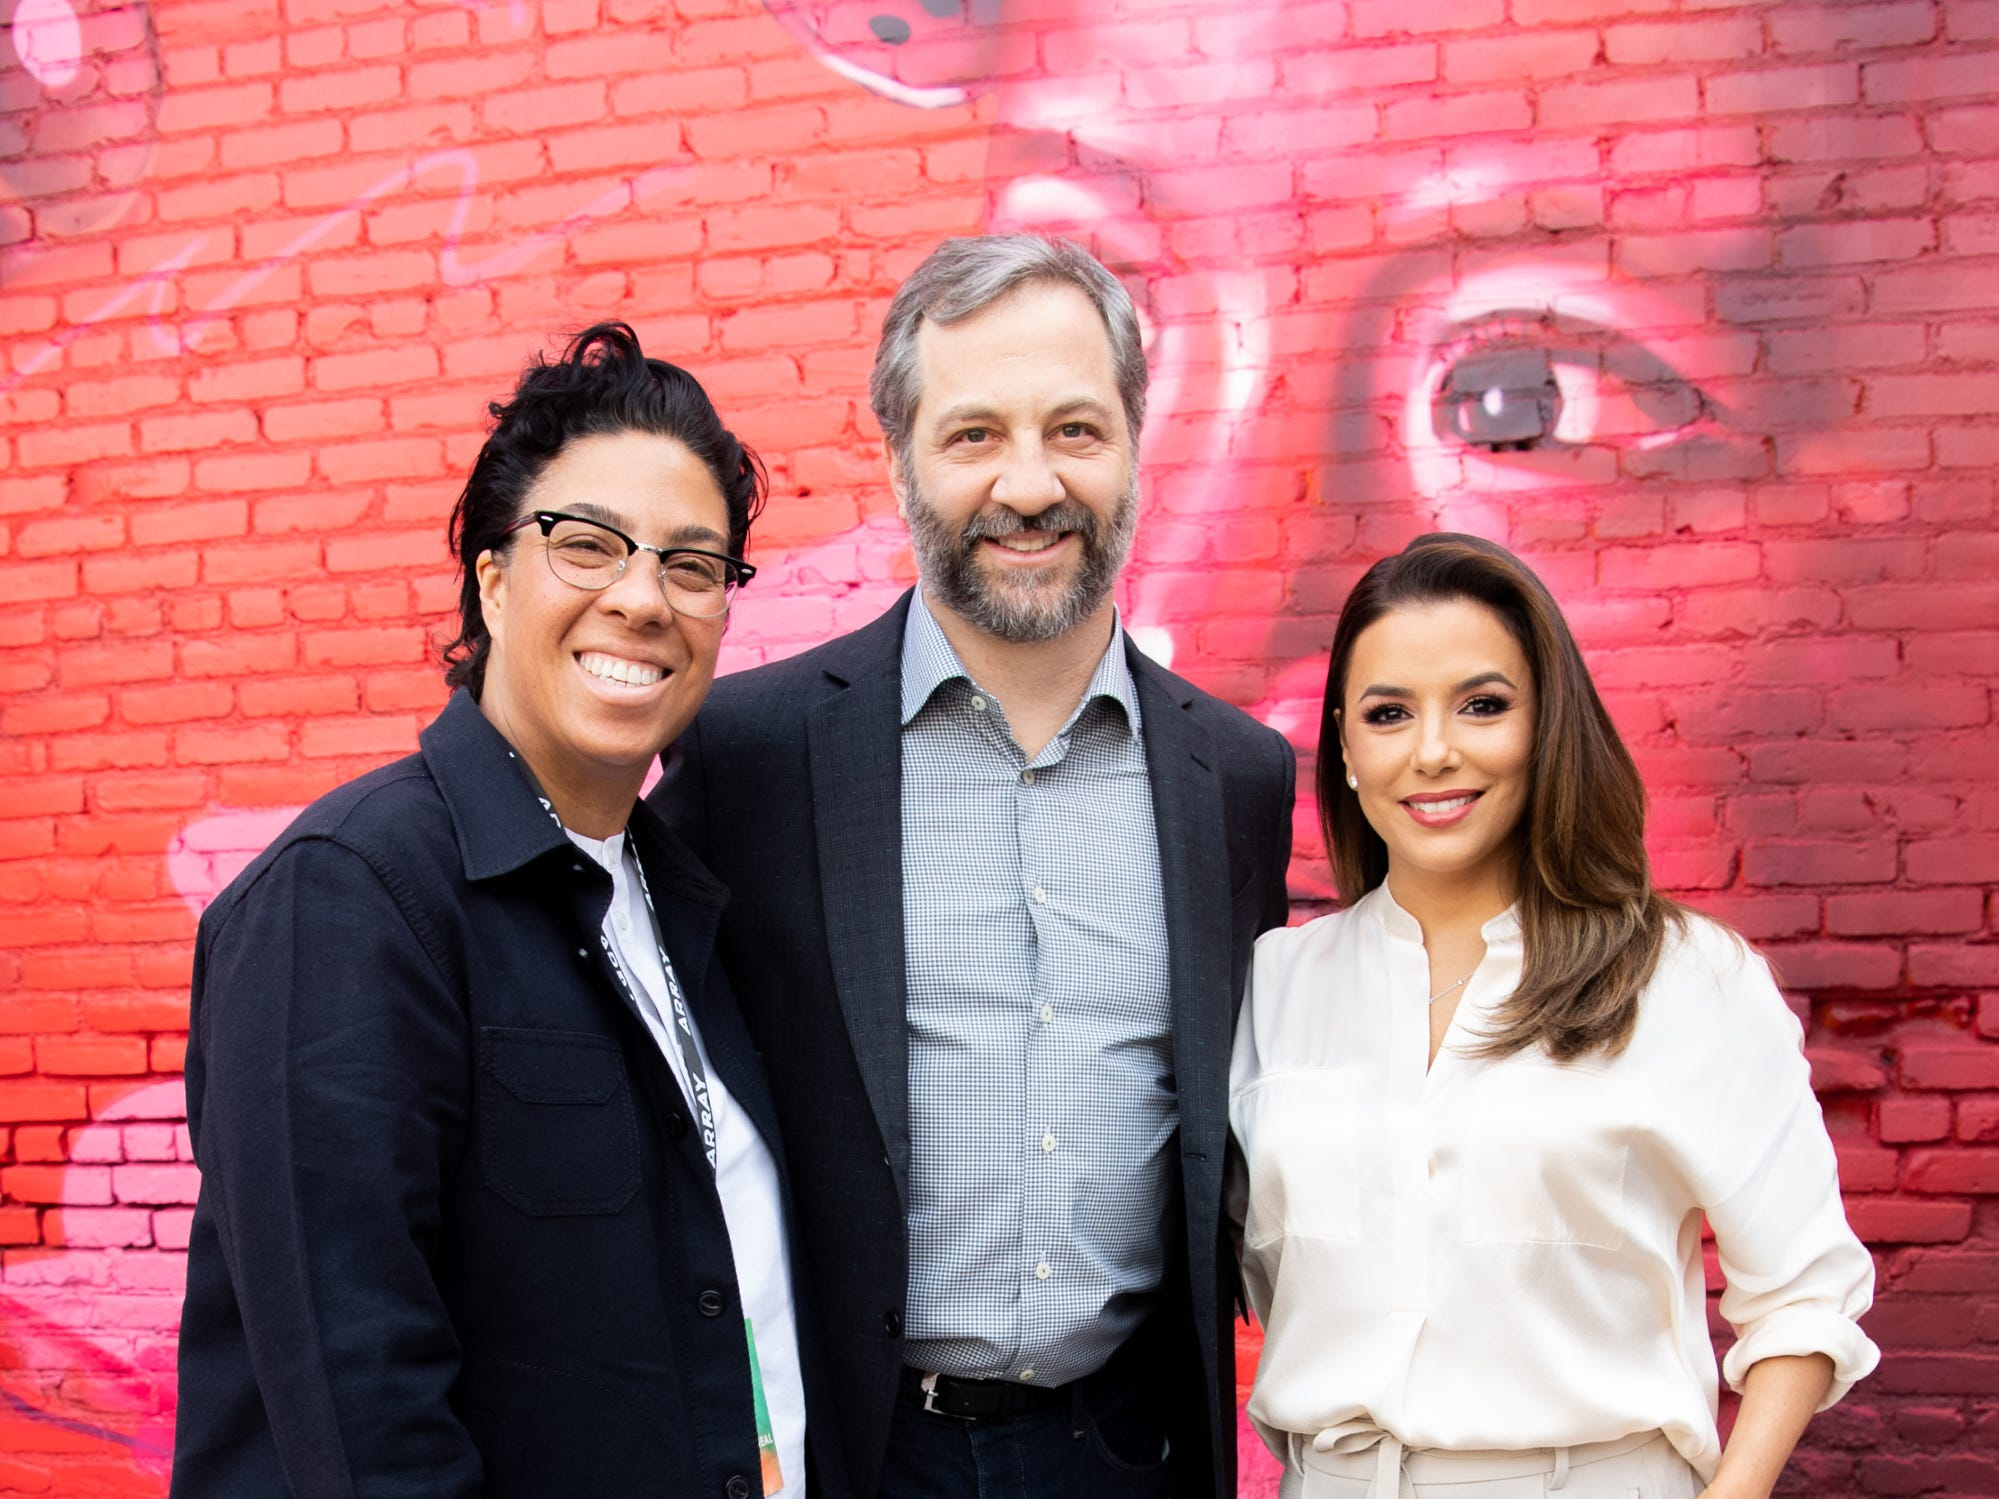 LOS ANGELES, CALIFORNIA - JANUARY 22: Angela Robinson, Judd Apatow and Eva Longoria attend the 3rd annual National Day of Racial Healing at Array on January 22, 2019 in Los Angeles, California. (Photo by Emma McIntyre/Getty Images) ORG XMIT: 775286570 ORIG FILE ID: 1098157904